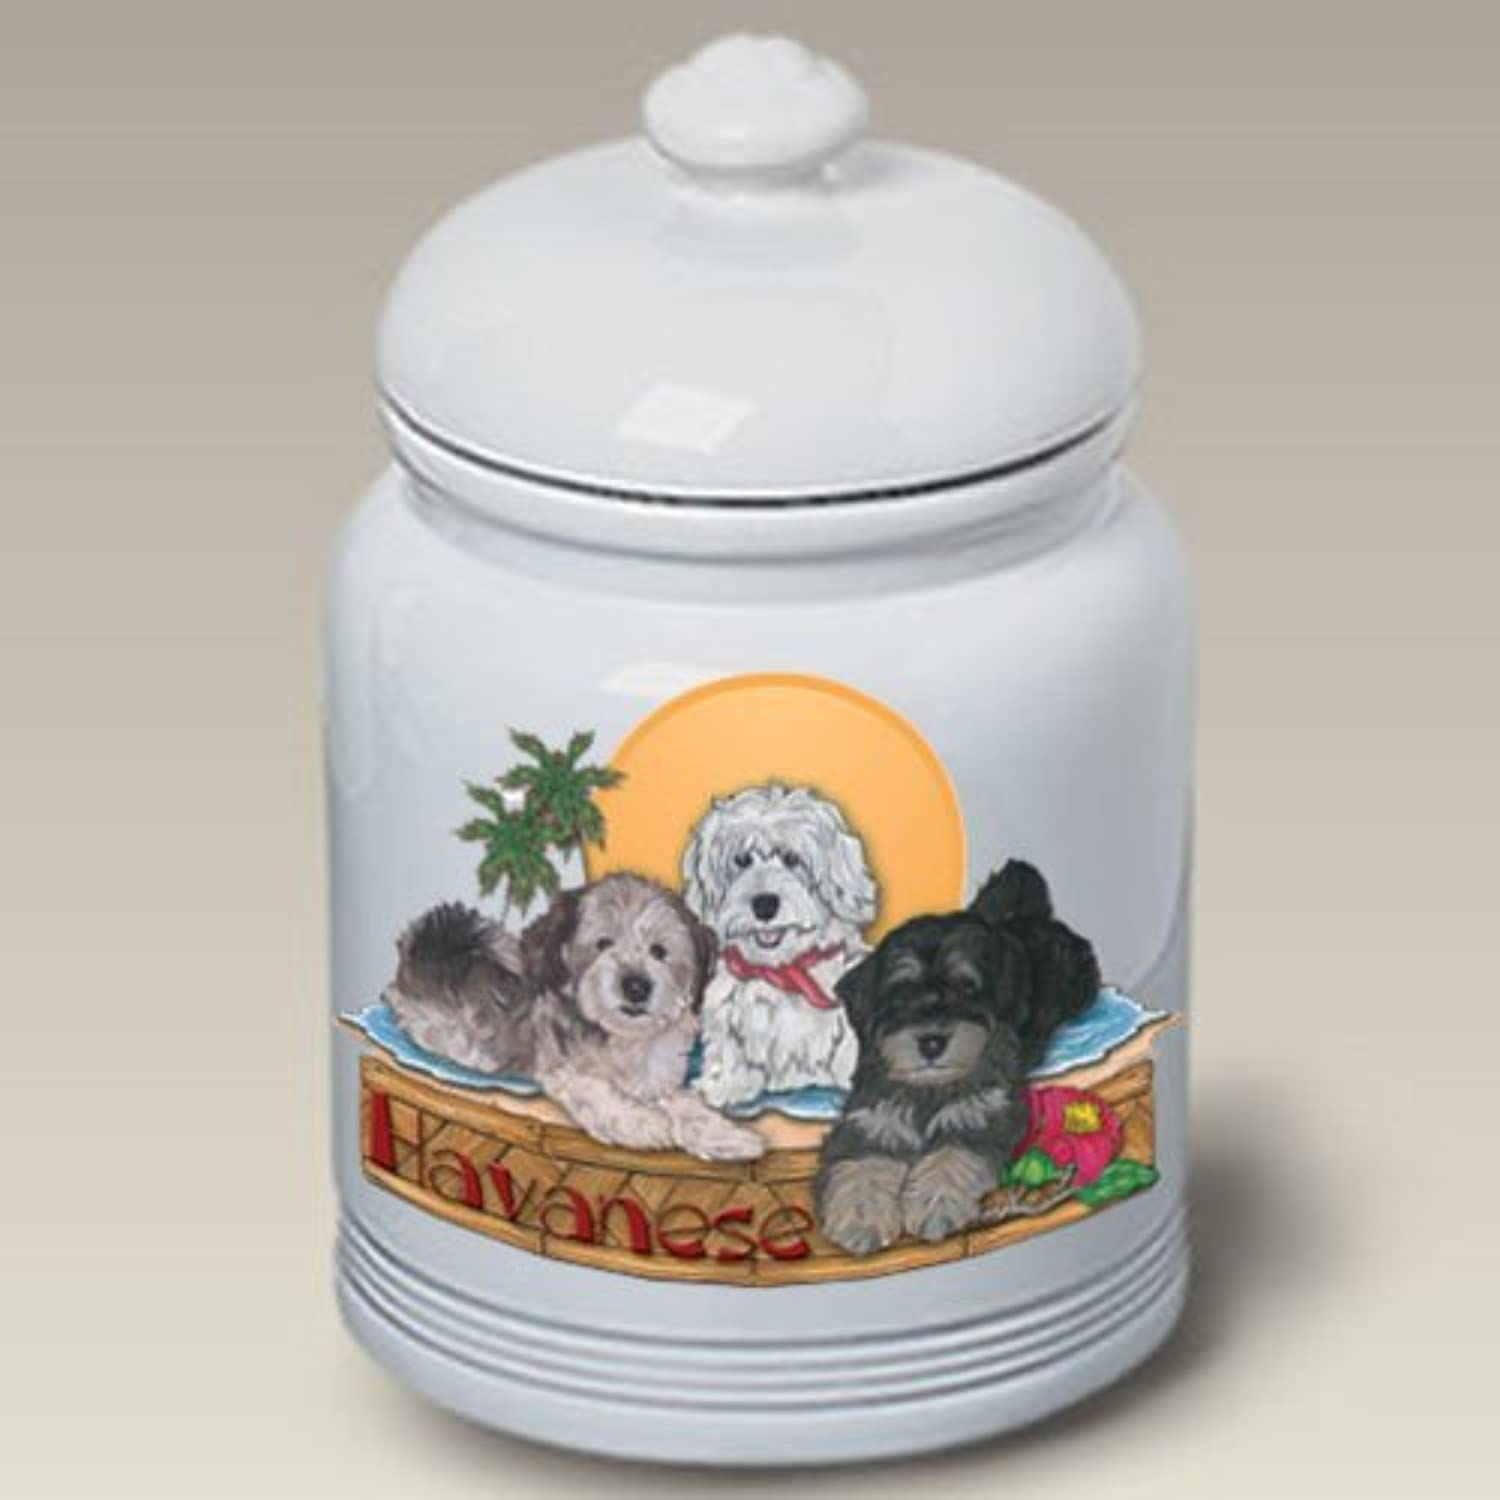 Havaneses  Pipsqueak Treat Jar by Bob Martin